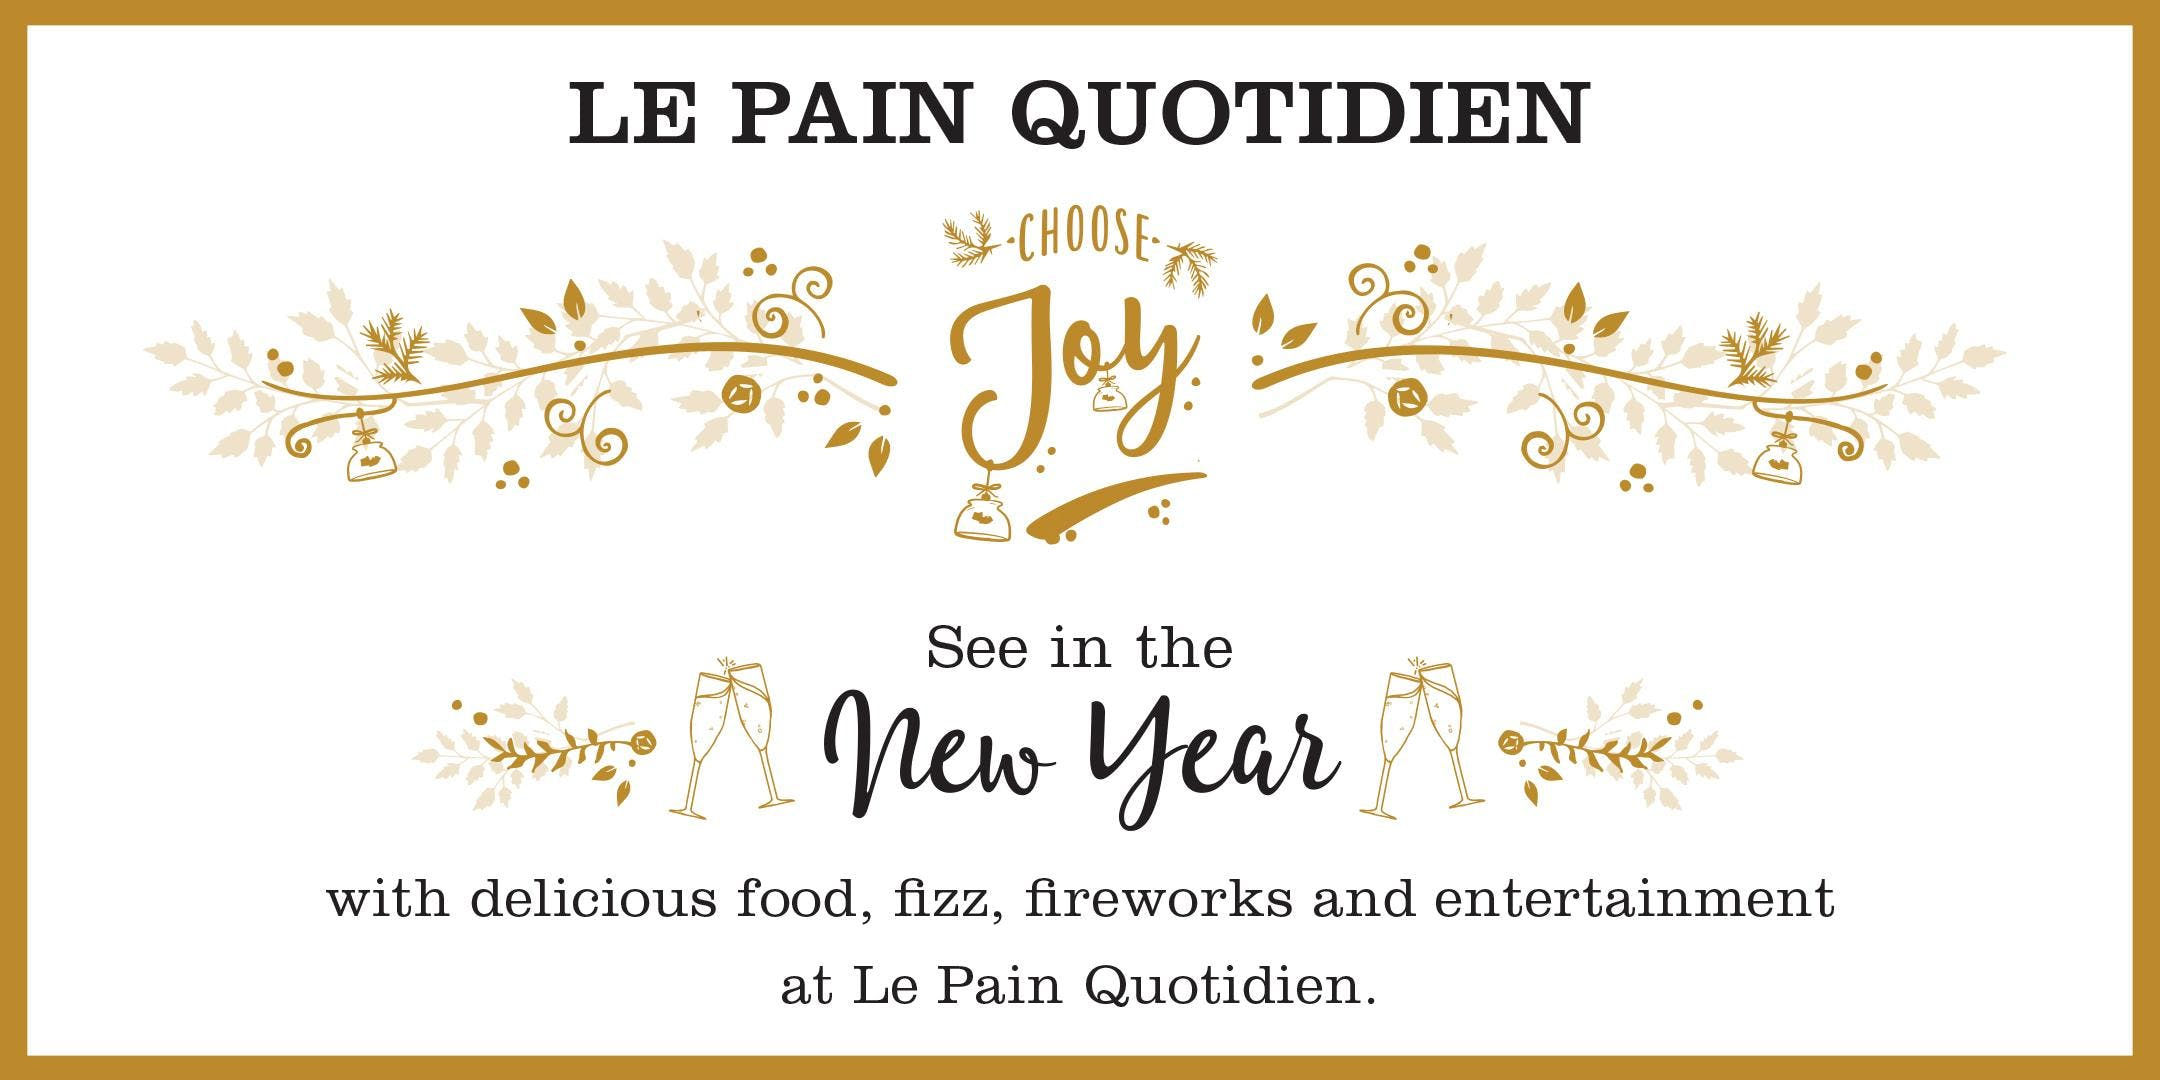 New Years Eve at Le Pain Quotidien